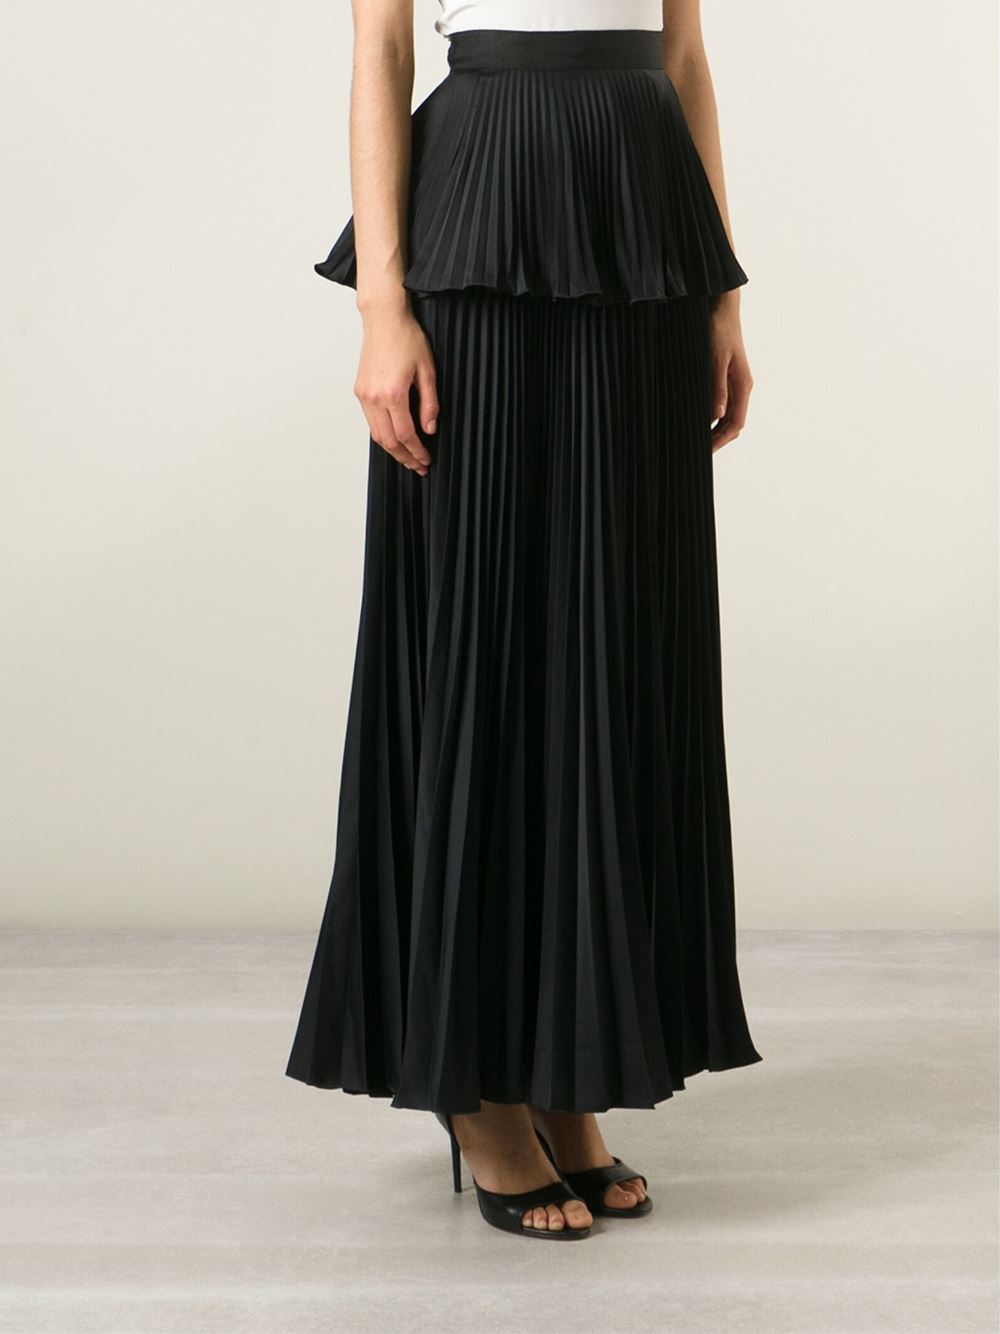 Issa Women's Black Long Pleated Peplum Skirt